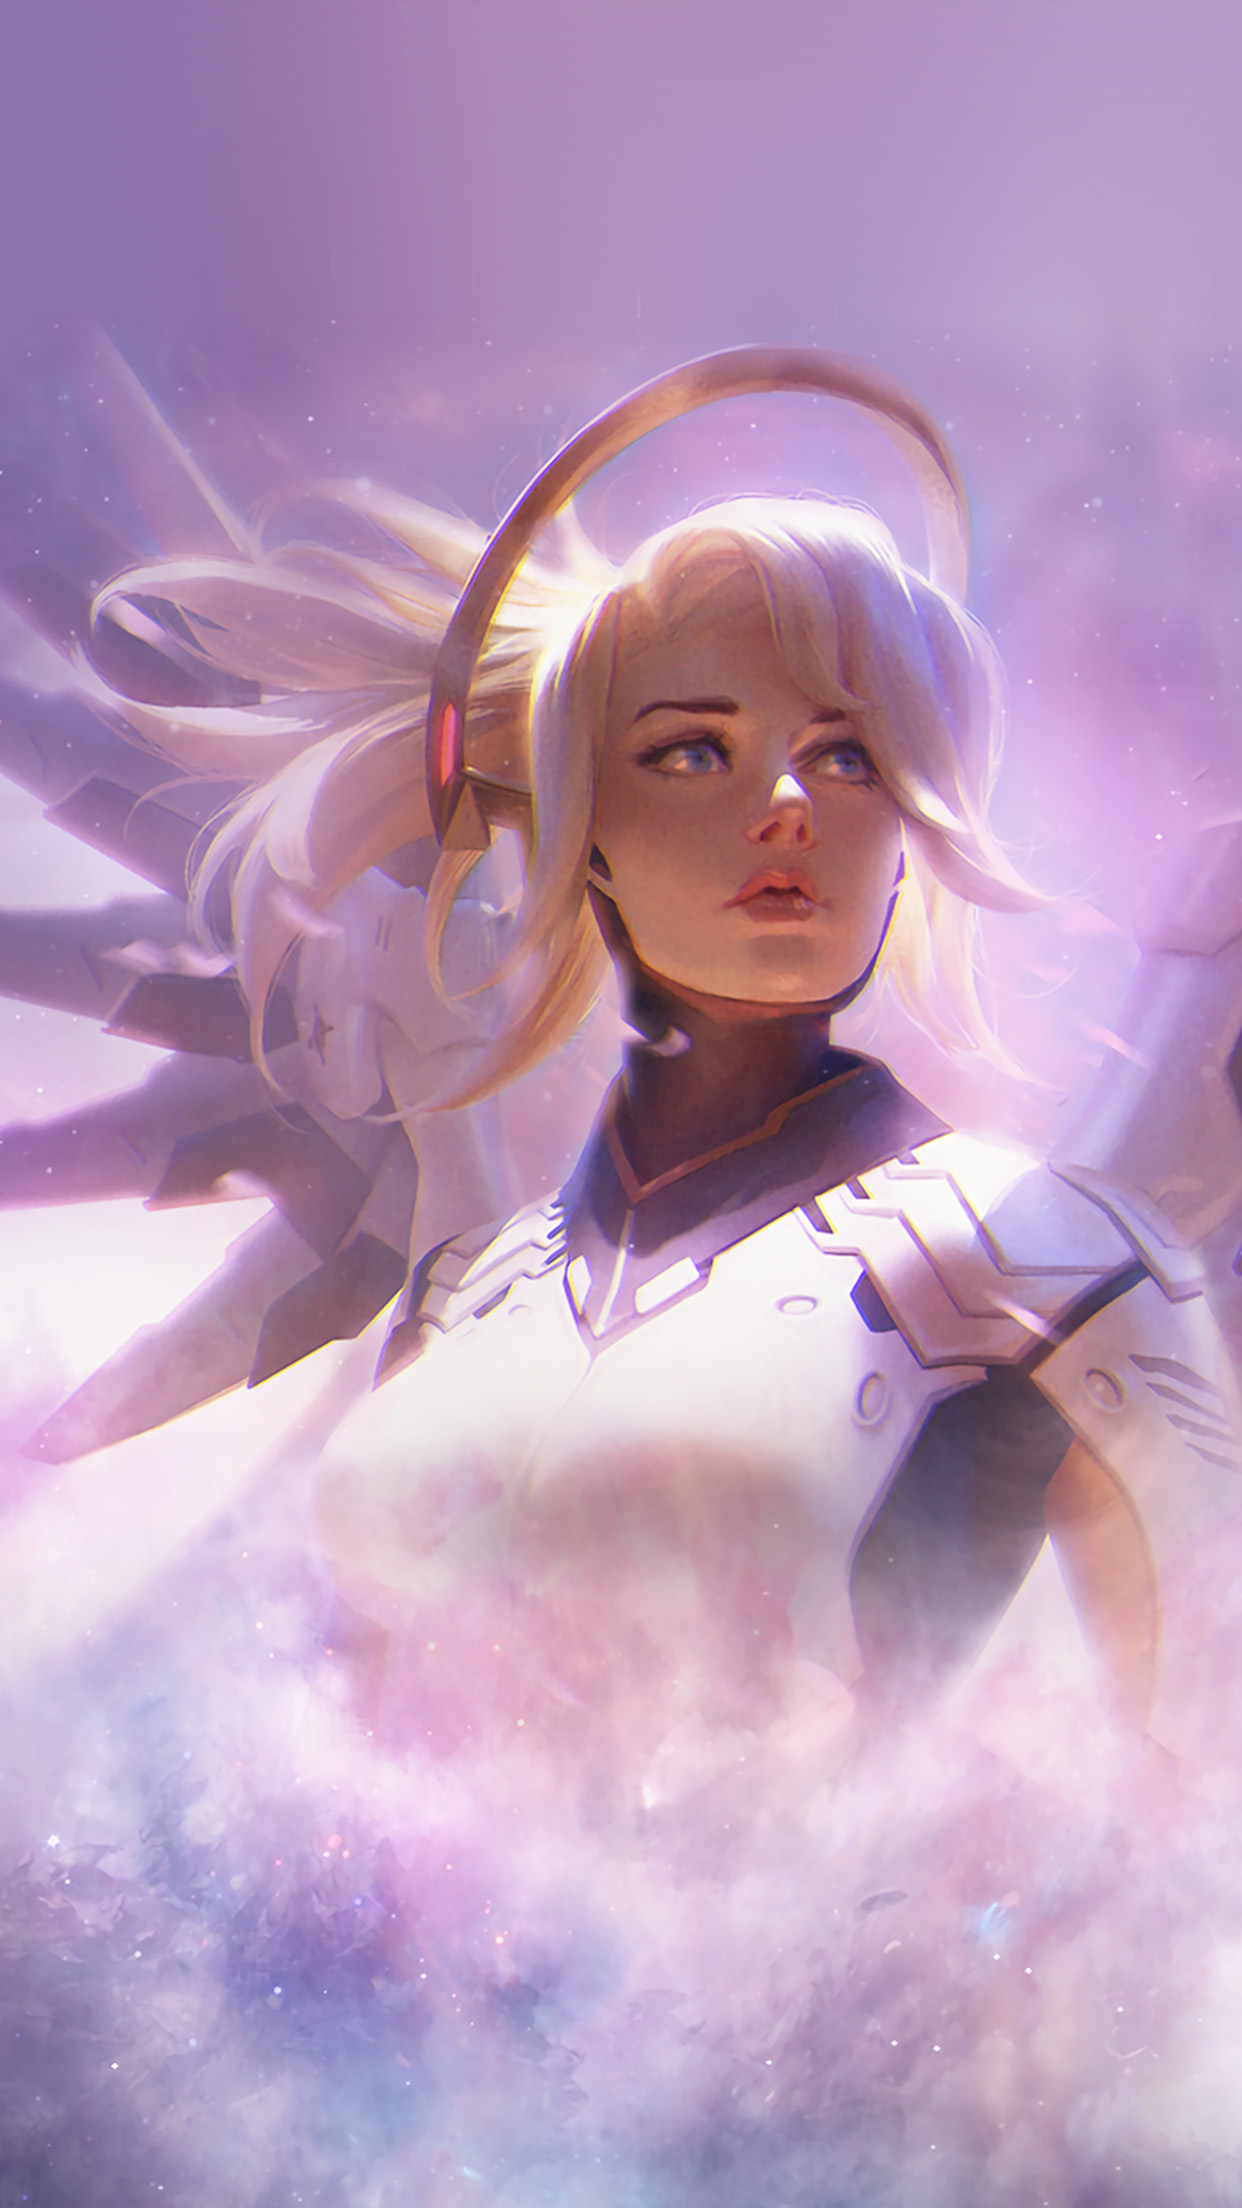 Mercy Overwatch Wallpaper Iphone 1242x2208 Download Hd Wallpaper Wallpapertip